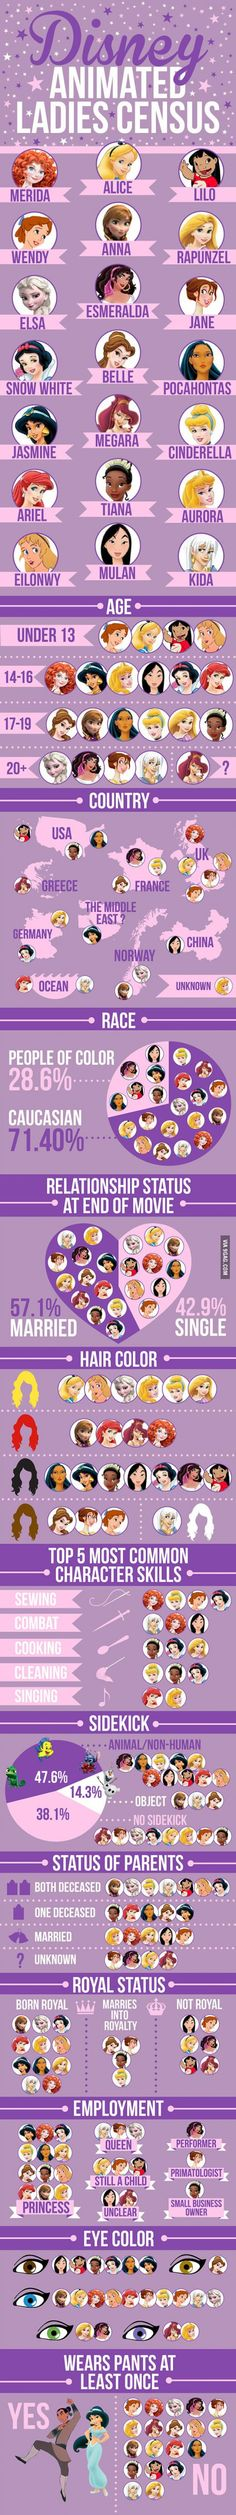 Not accurate but pretty neat. - We Did An In-Depth Analysis Of 21 Disney Female Leads